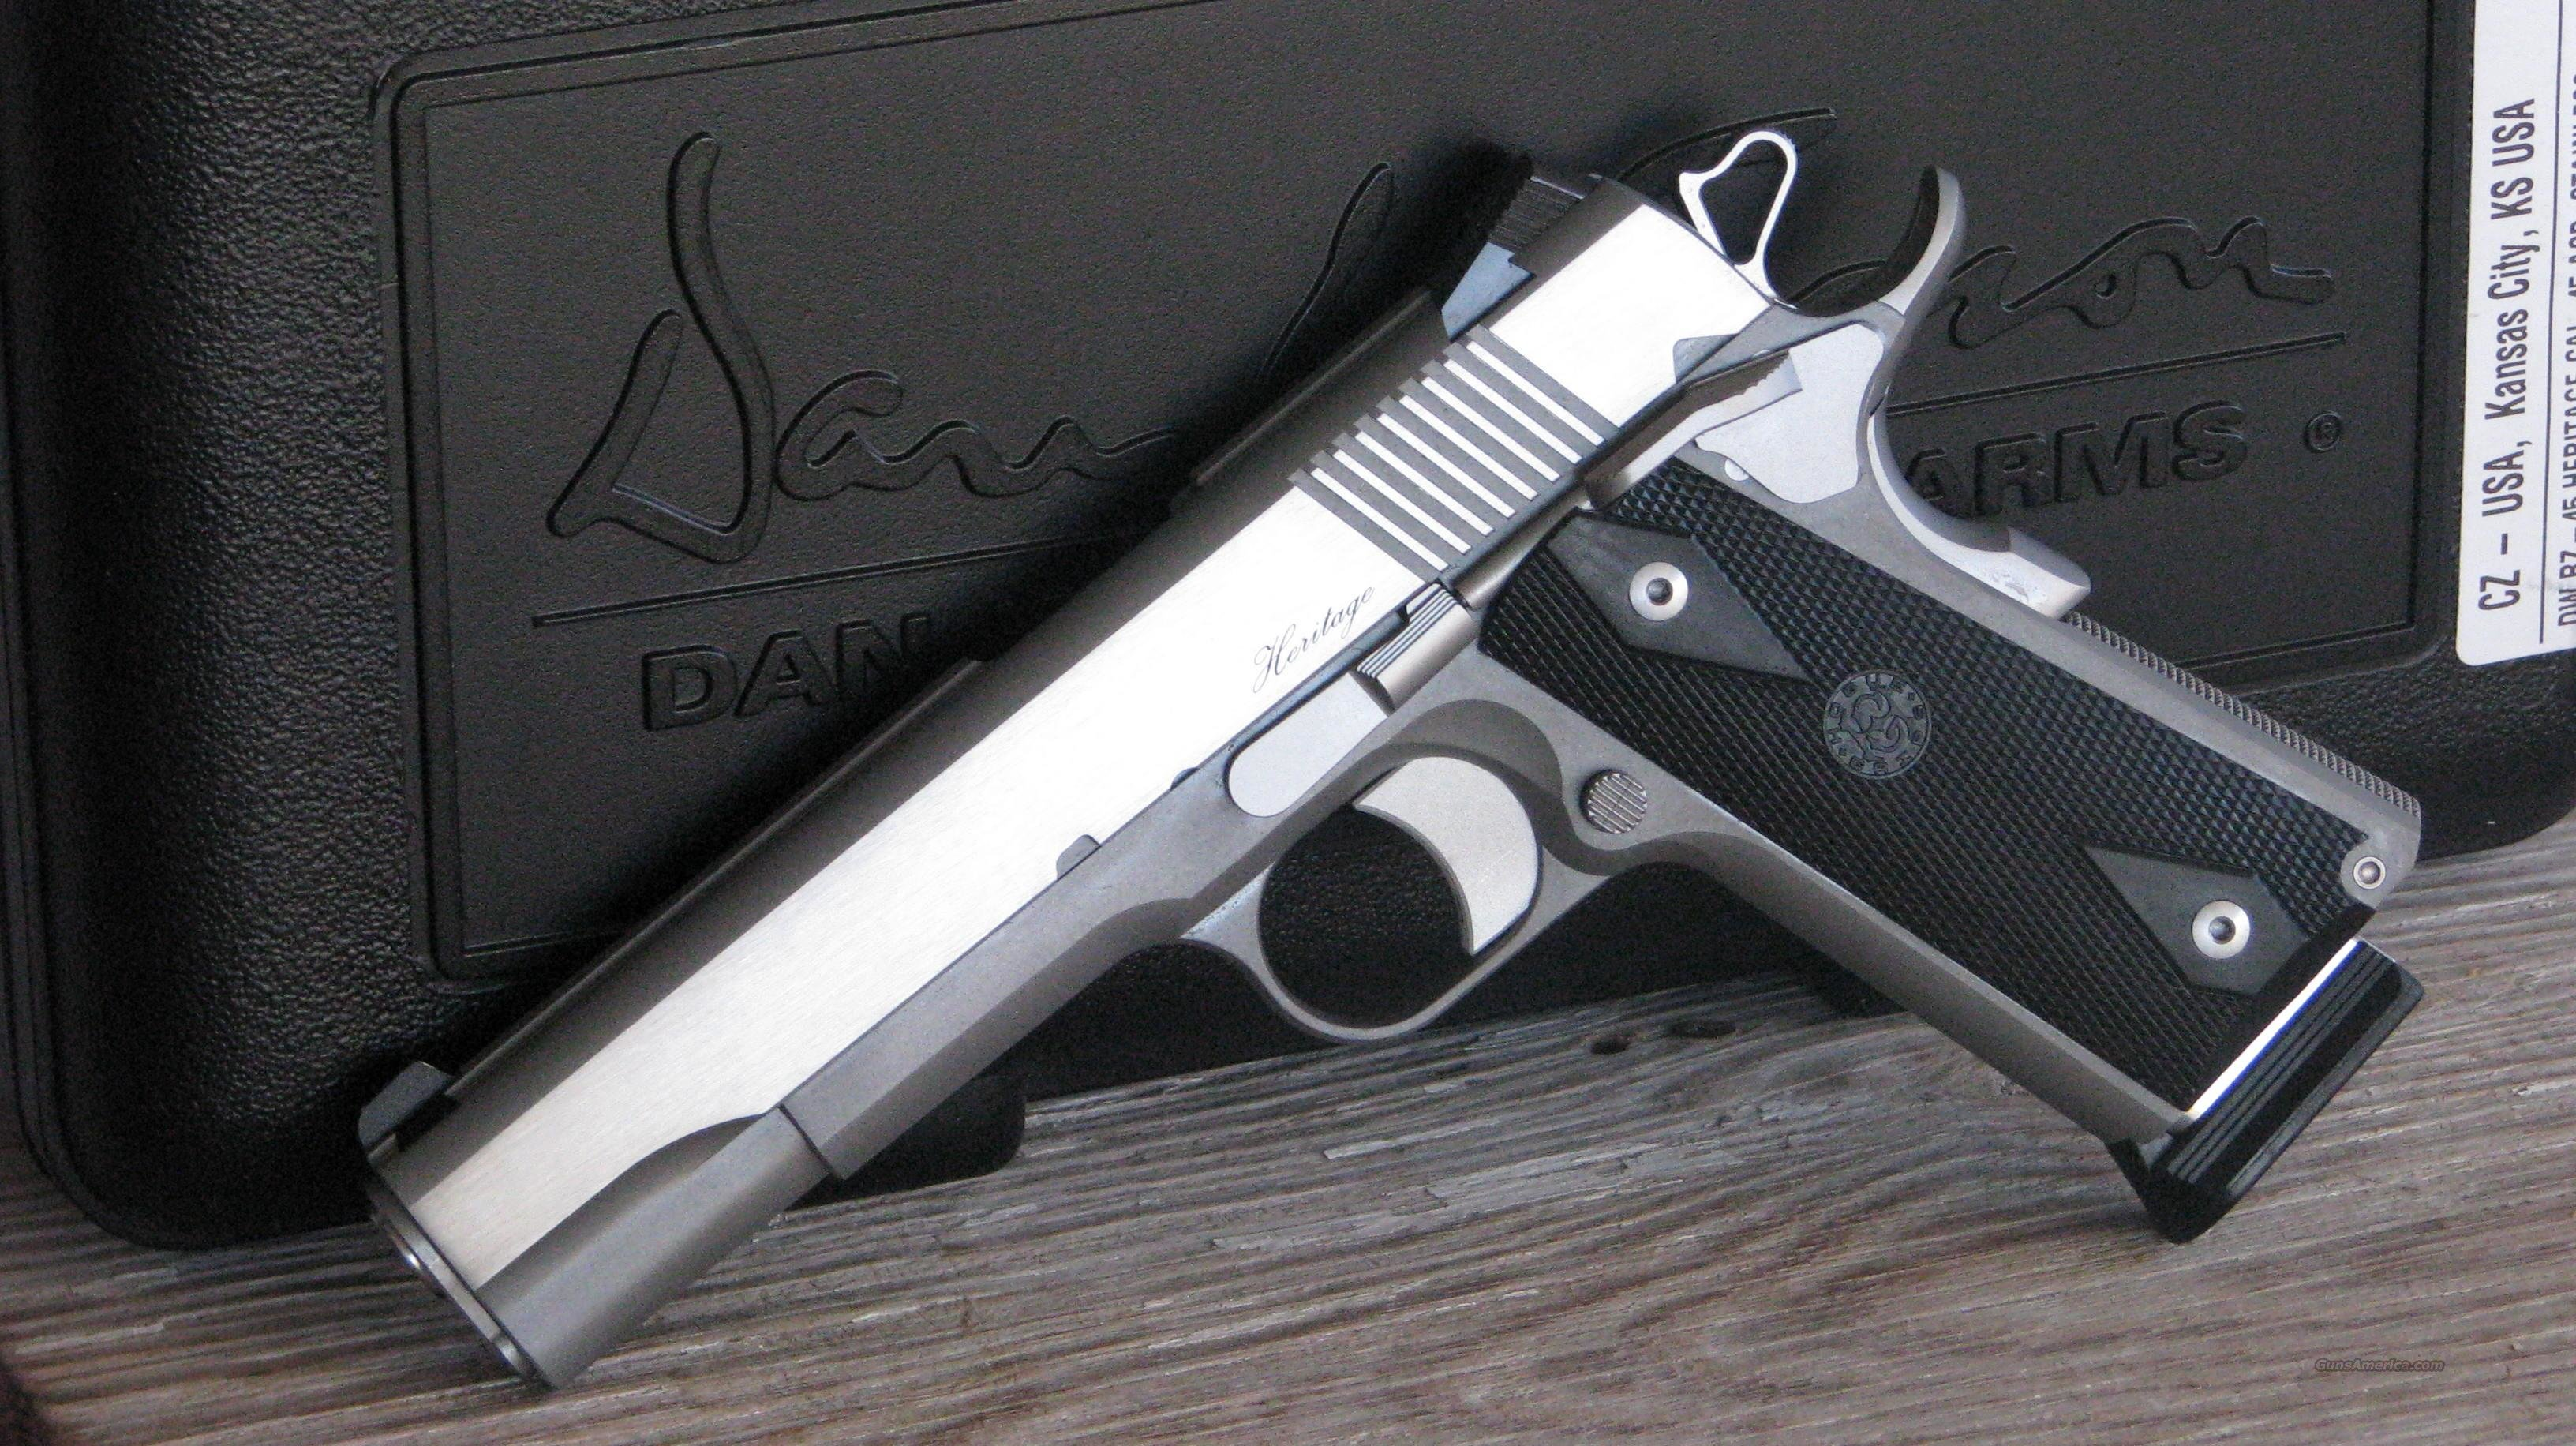 cz Dan Wesson Razor RZ-45 Heritage 1911 01981 /EASY PAY $110 Monthly  Guns > Pistols > Dan Wesson Pistols/Revolvers > 1911 Style